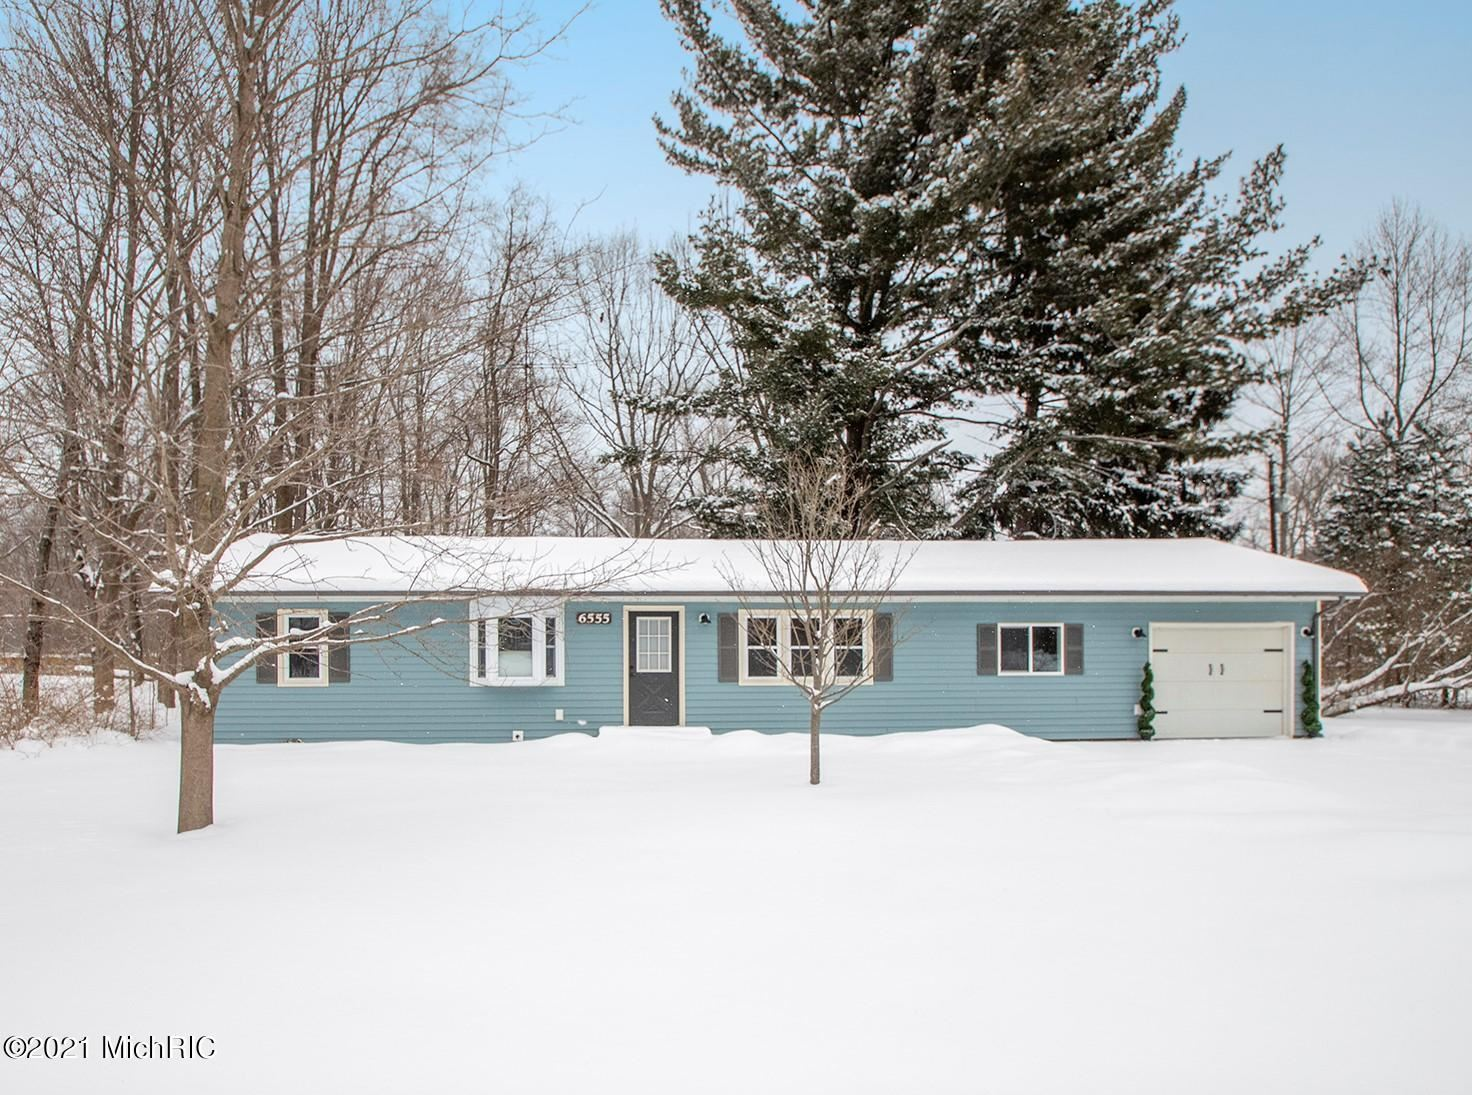 6555 Sleepy Owl Lane, Sawyer, MI 49125 - MLS#: 21004905